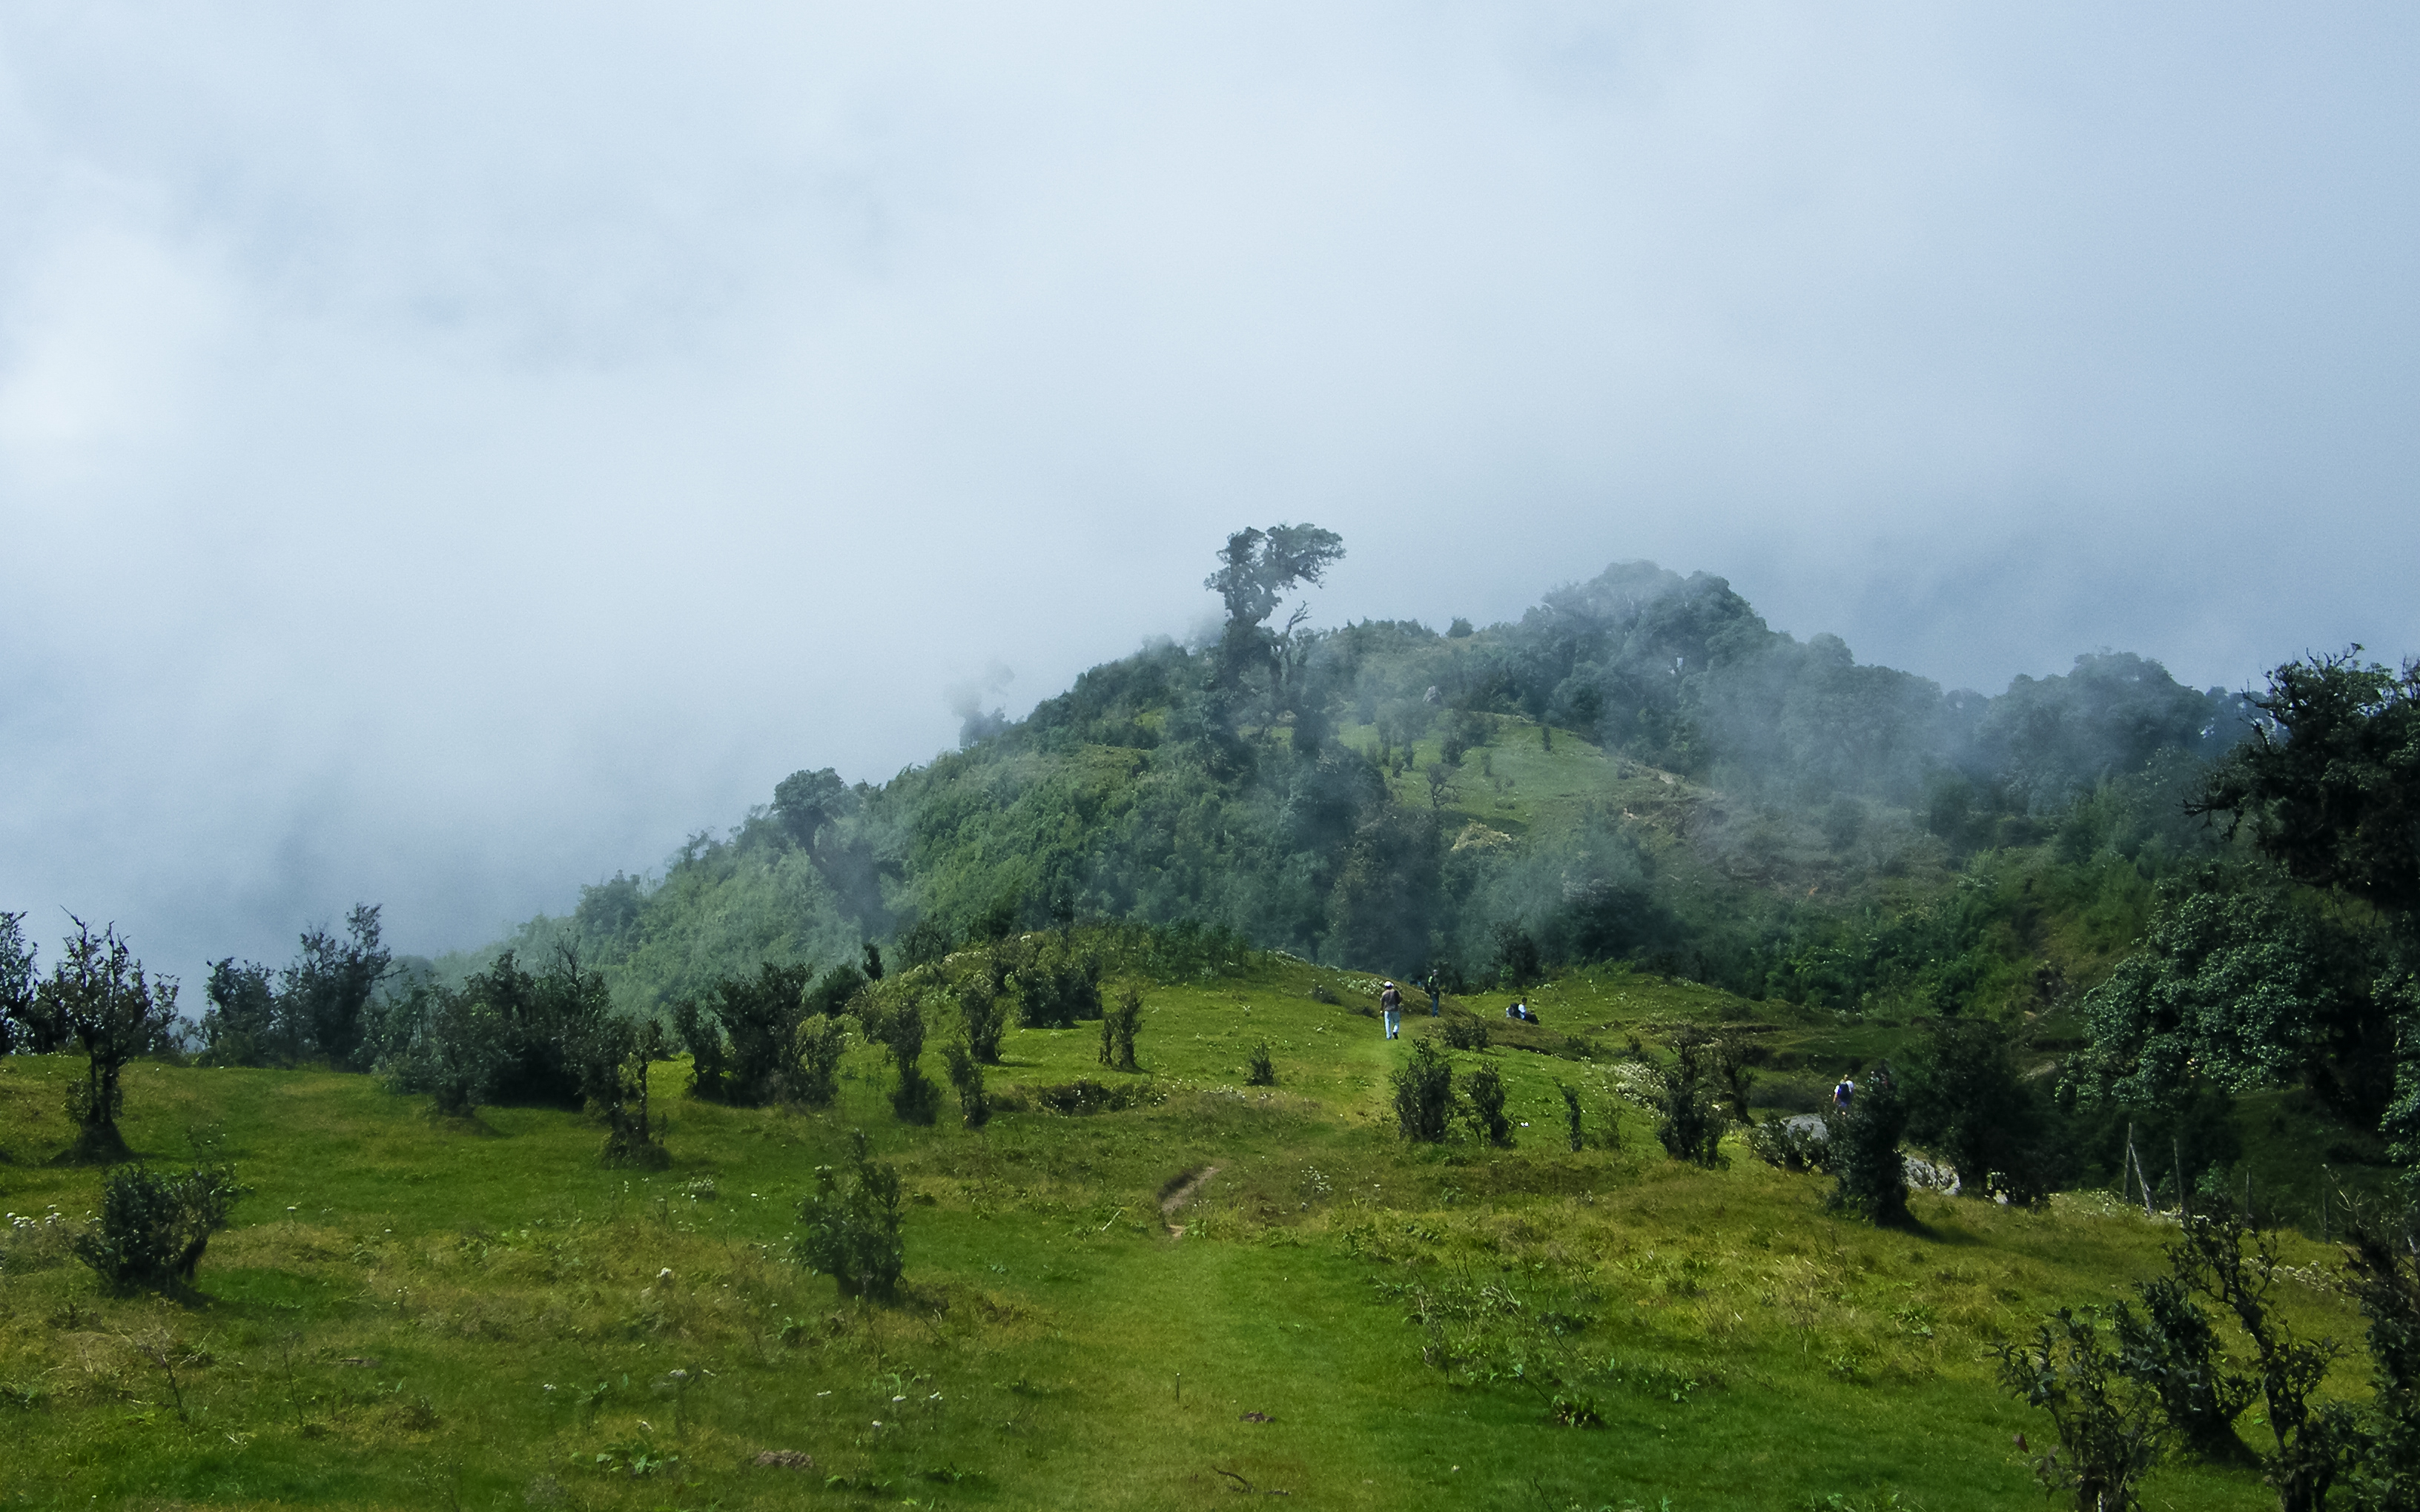 Vast green meadows and hills in Singalila National Park